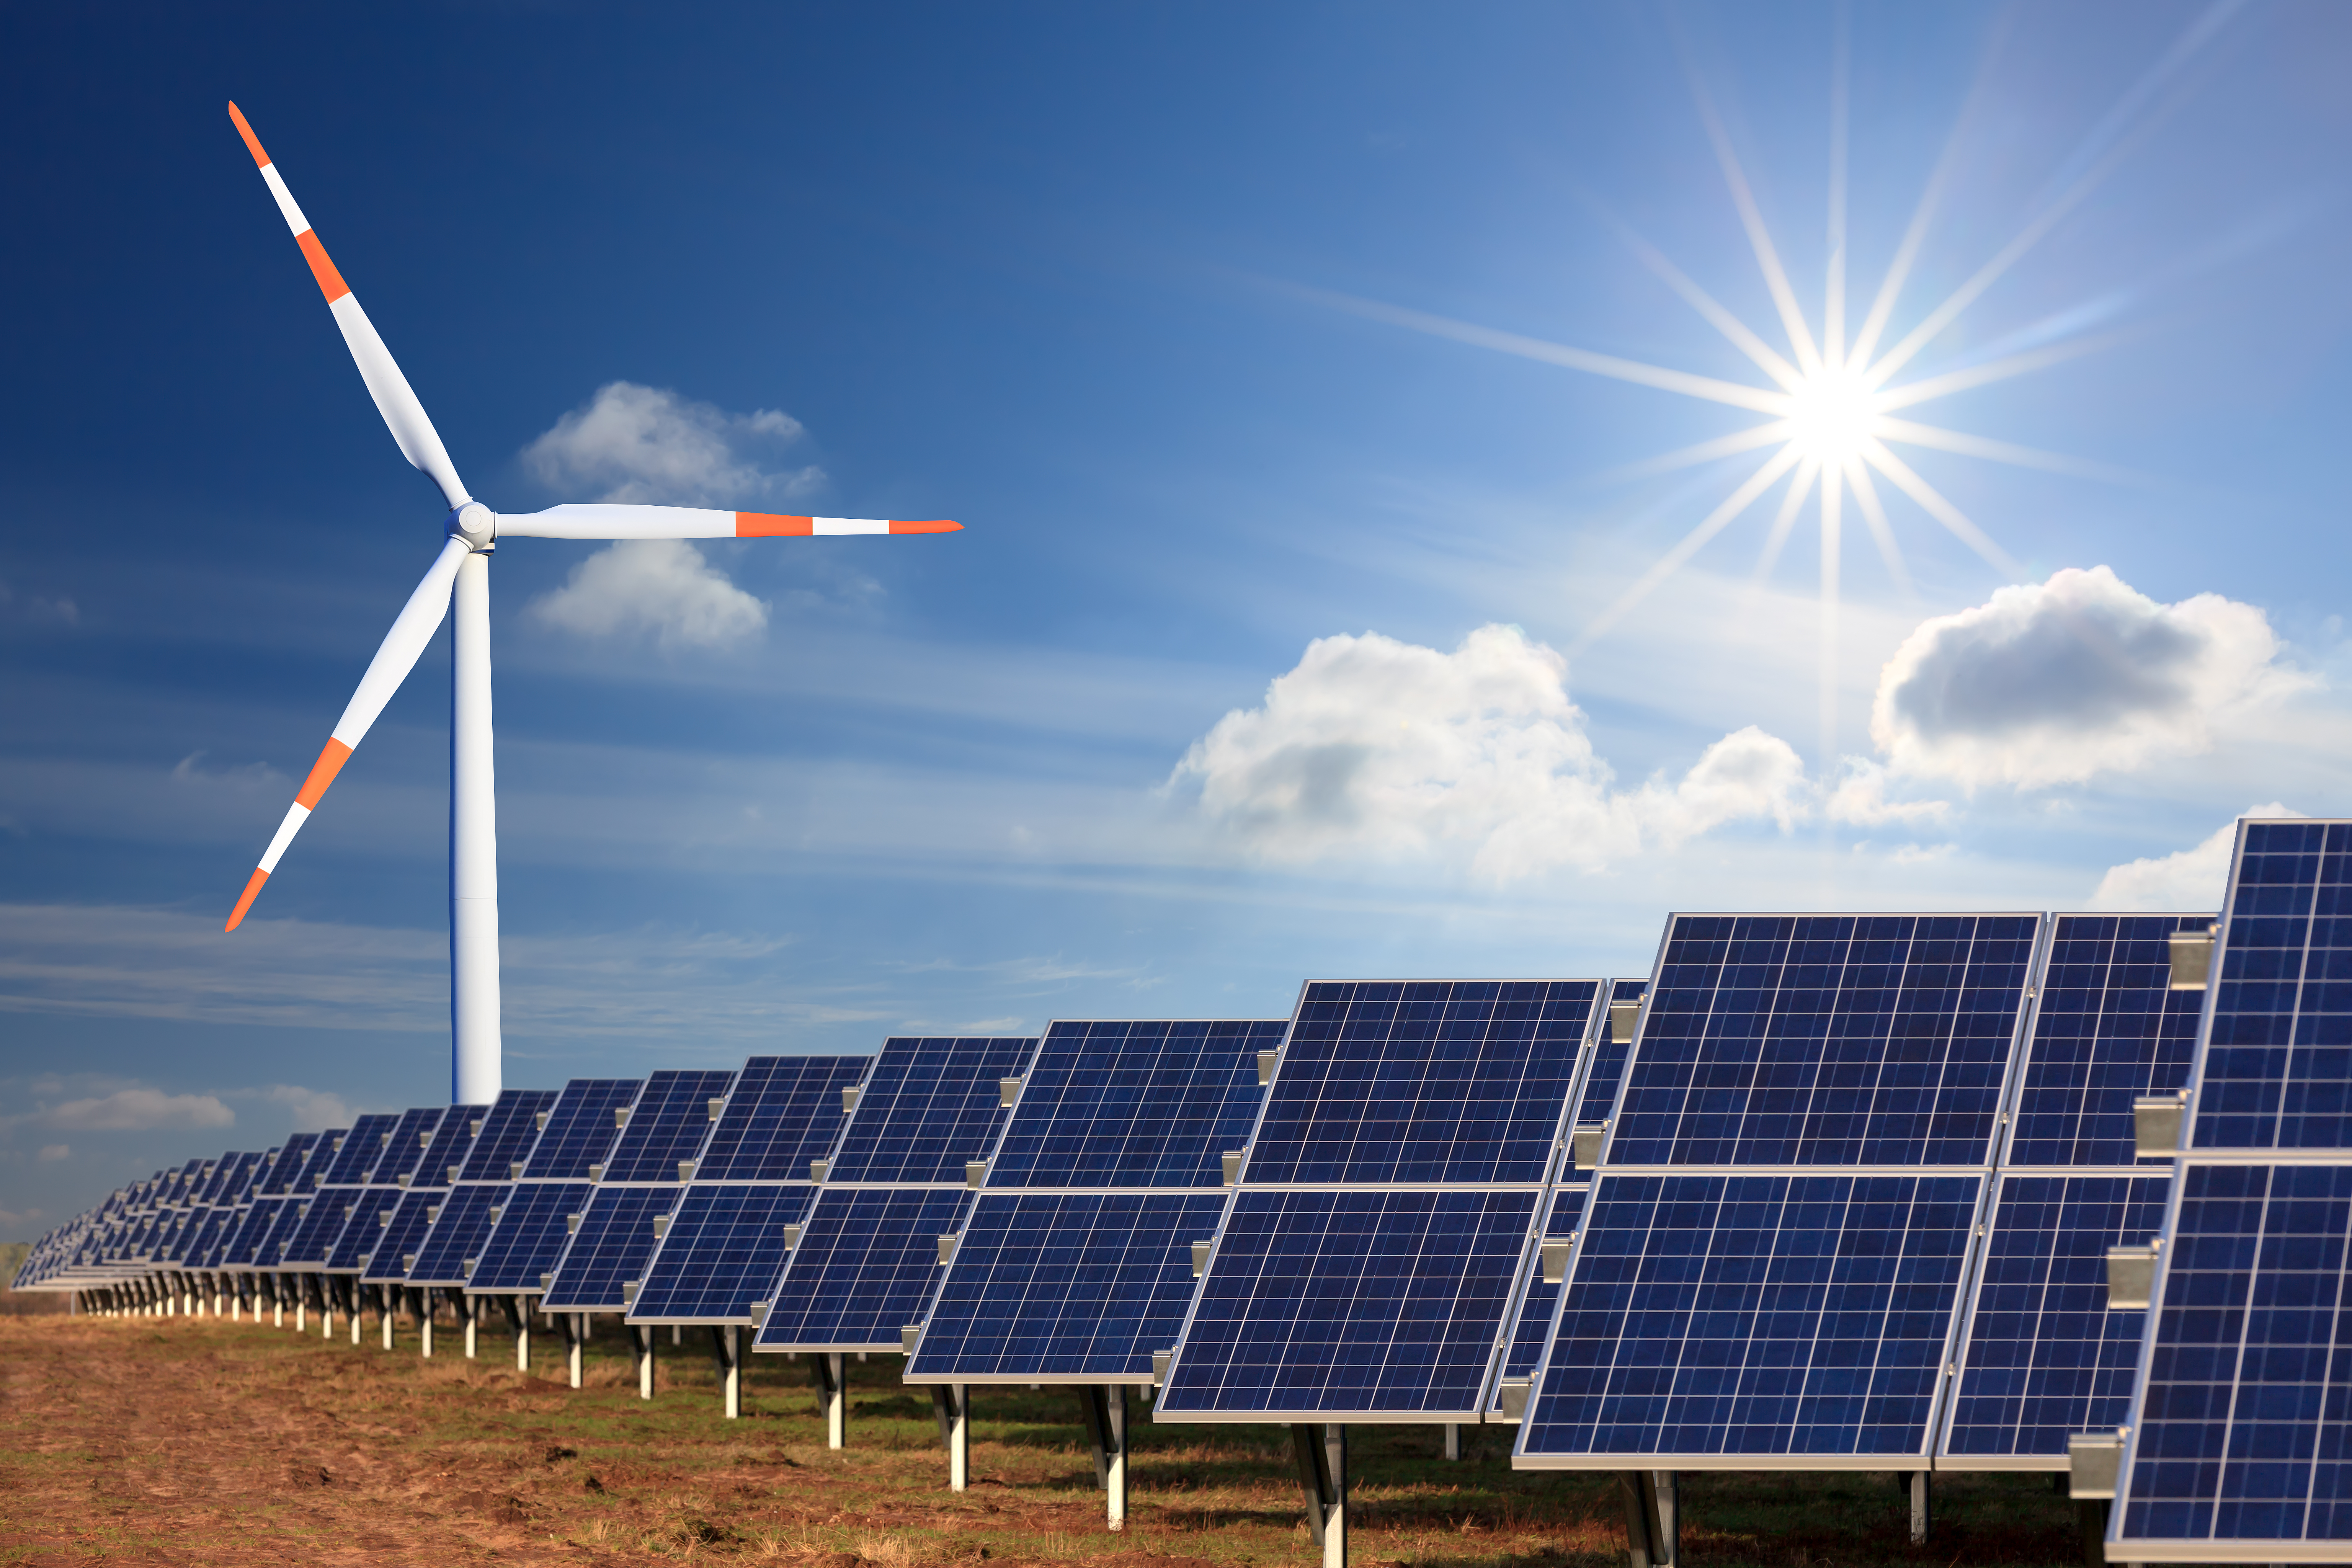 Wind power costs could drop 50%. Solar PV could provide up to 50% of global power. Damn.